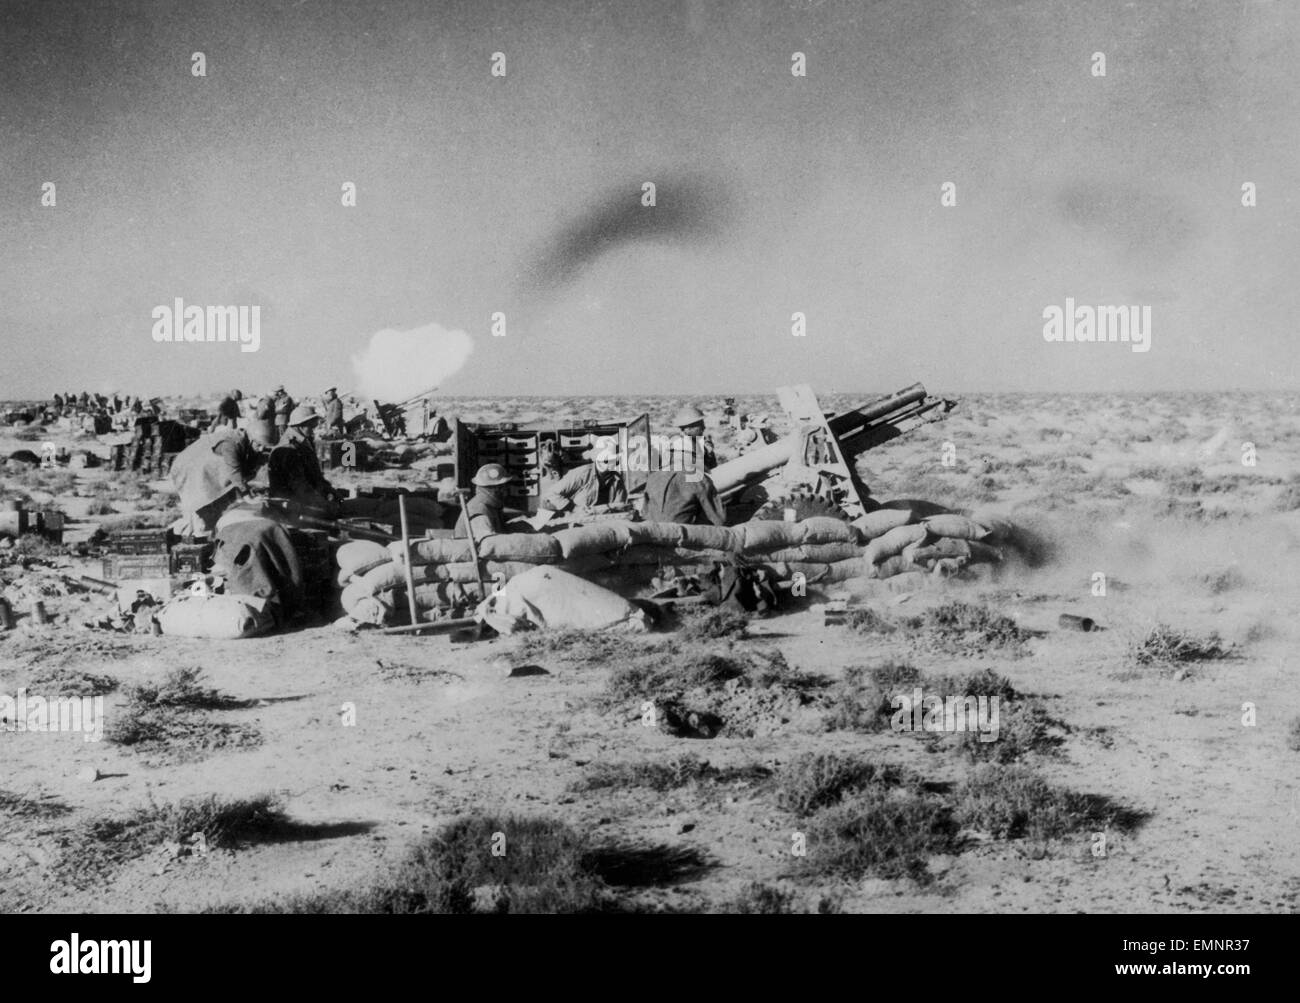 British artillery in action, bombarding Tobruk before the infantry and tanks attacked 20th January 1941 - Stock Image